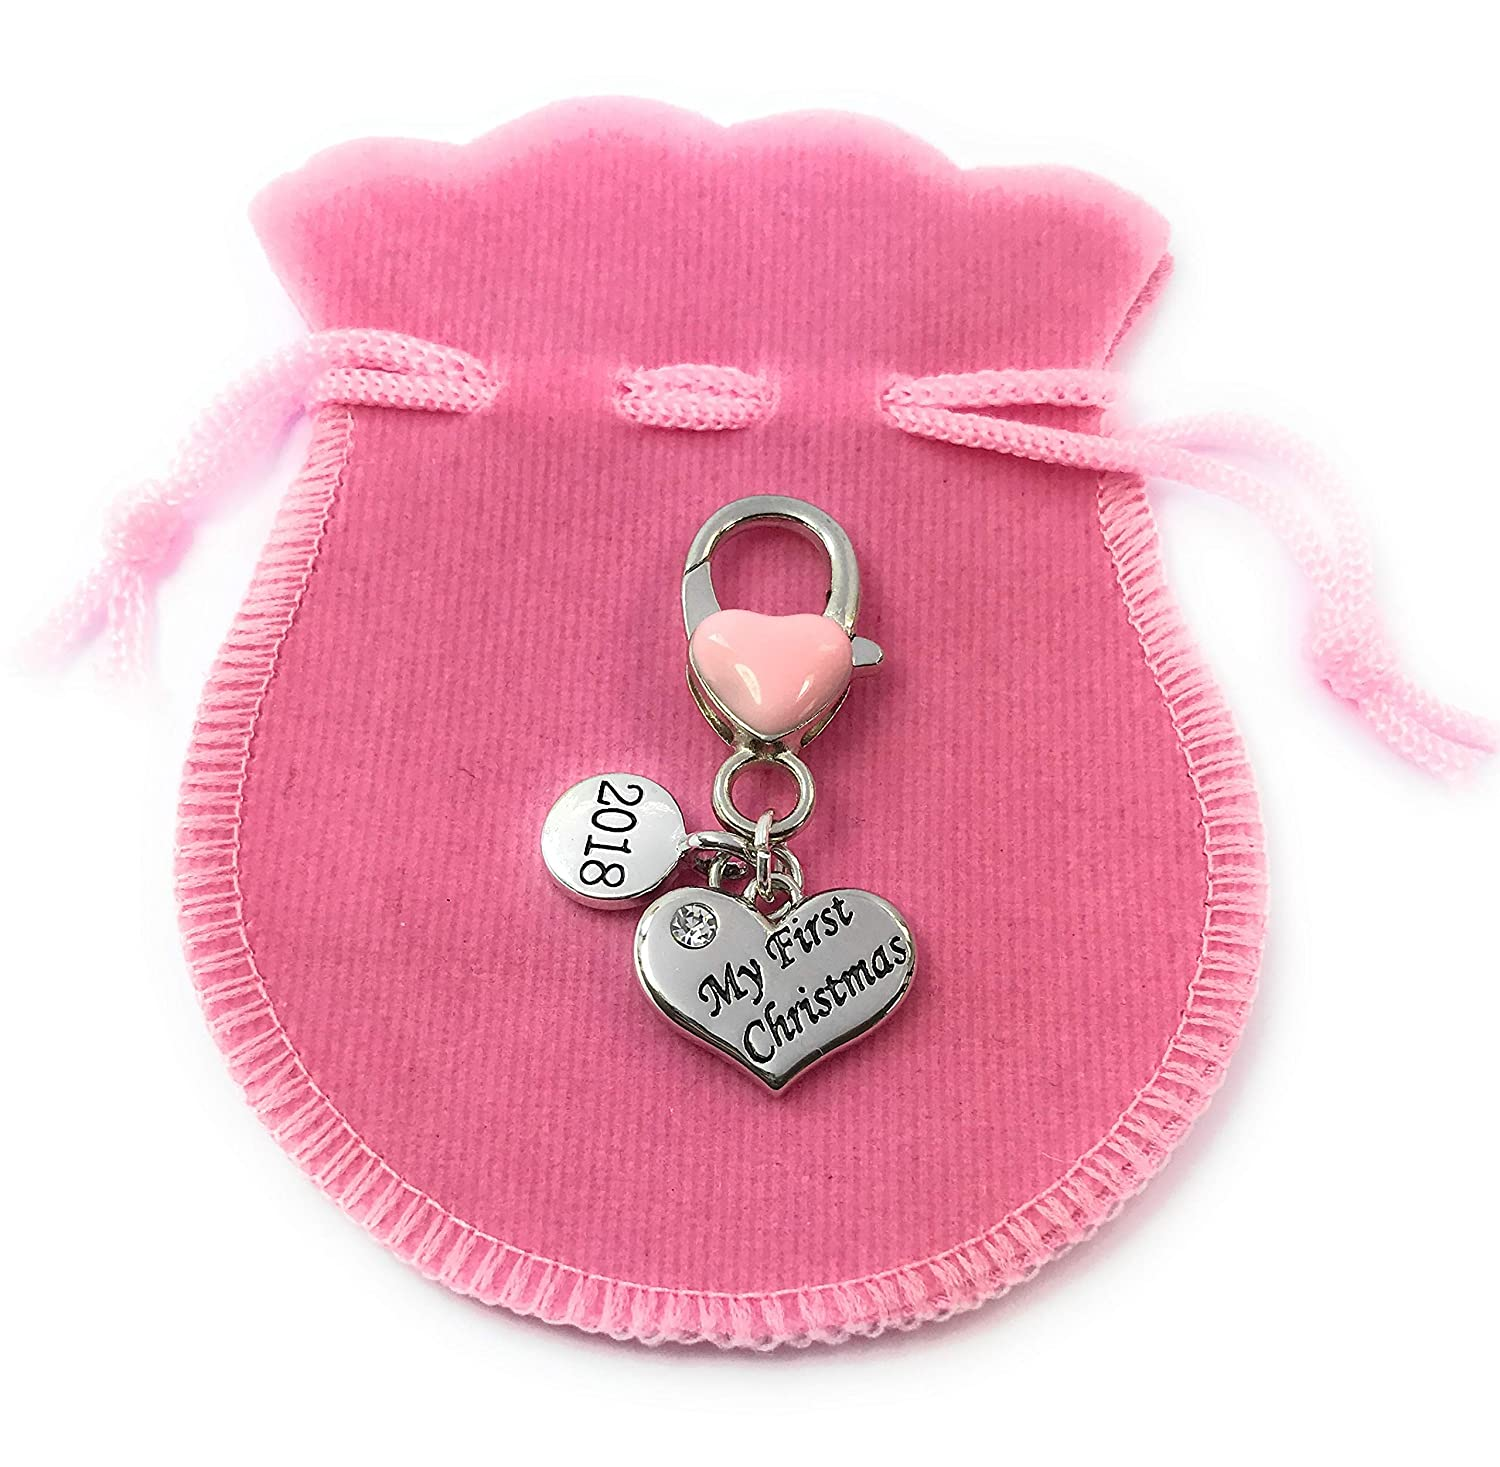 Baby Girl My First Christmas 2018 Keepsake Charms Keyring with Pink Velvet Gift Bag and a Gift Card by Libby's Market Place - from UK Seller Libby's Market Place